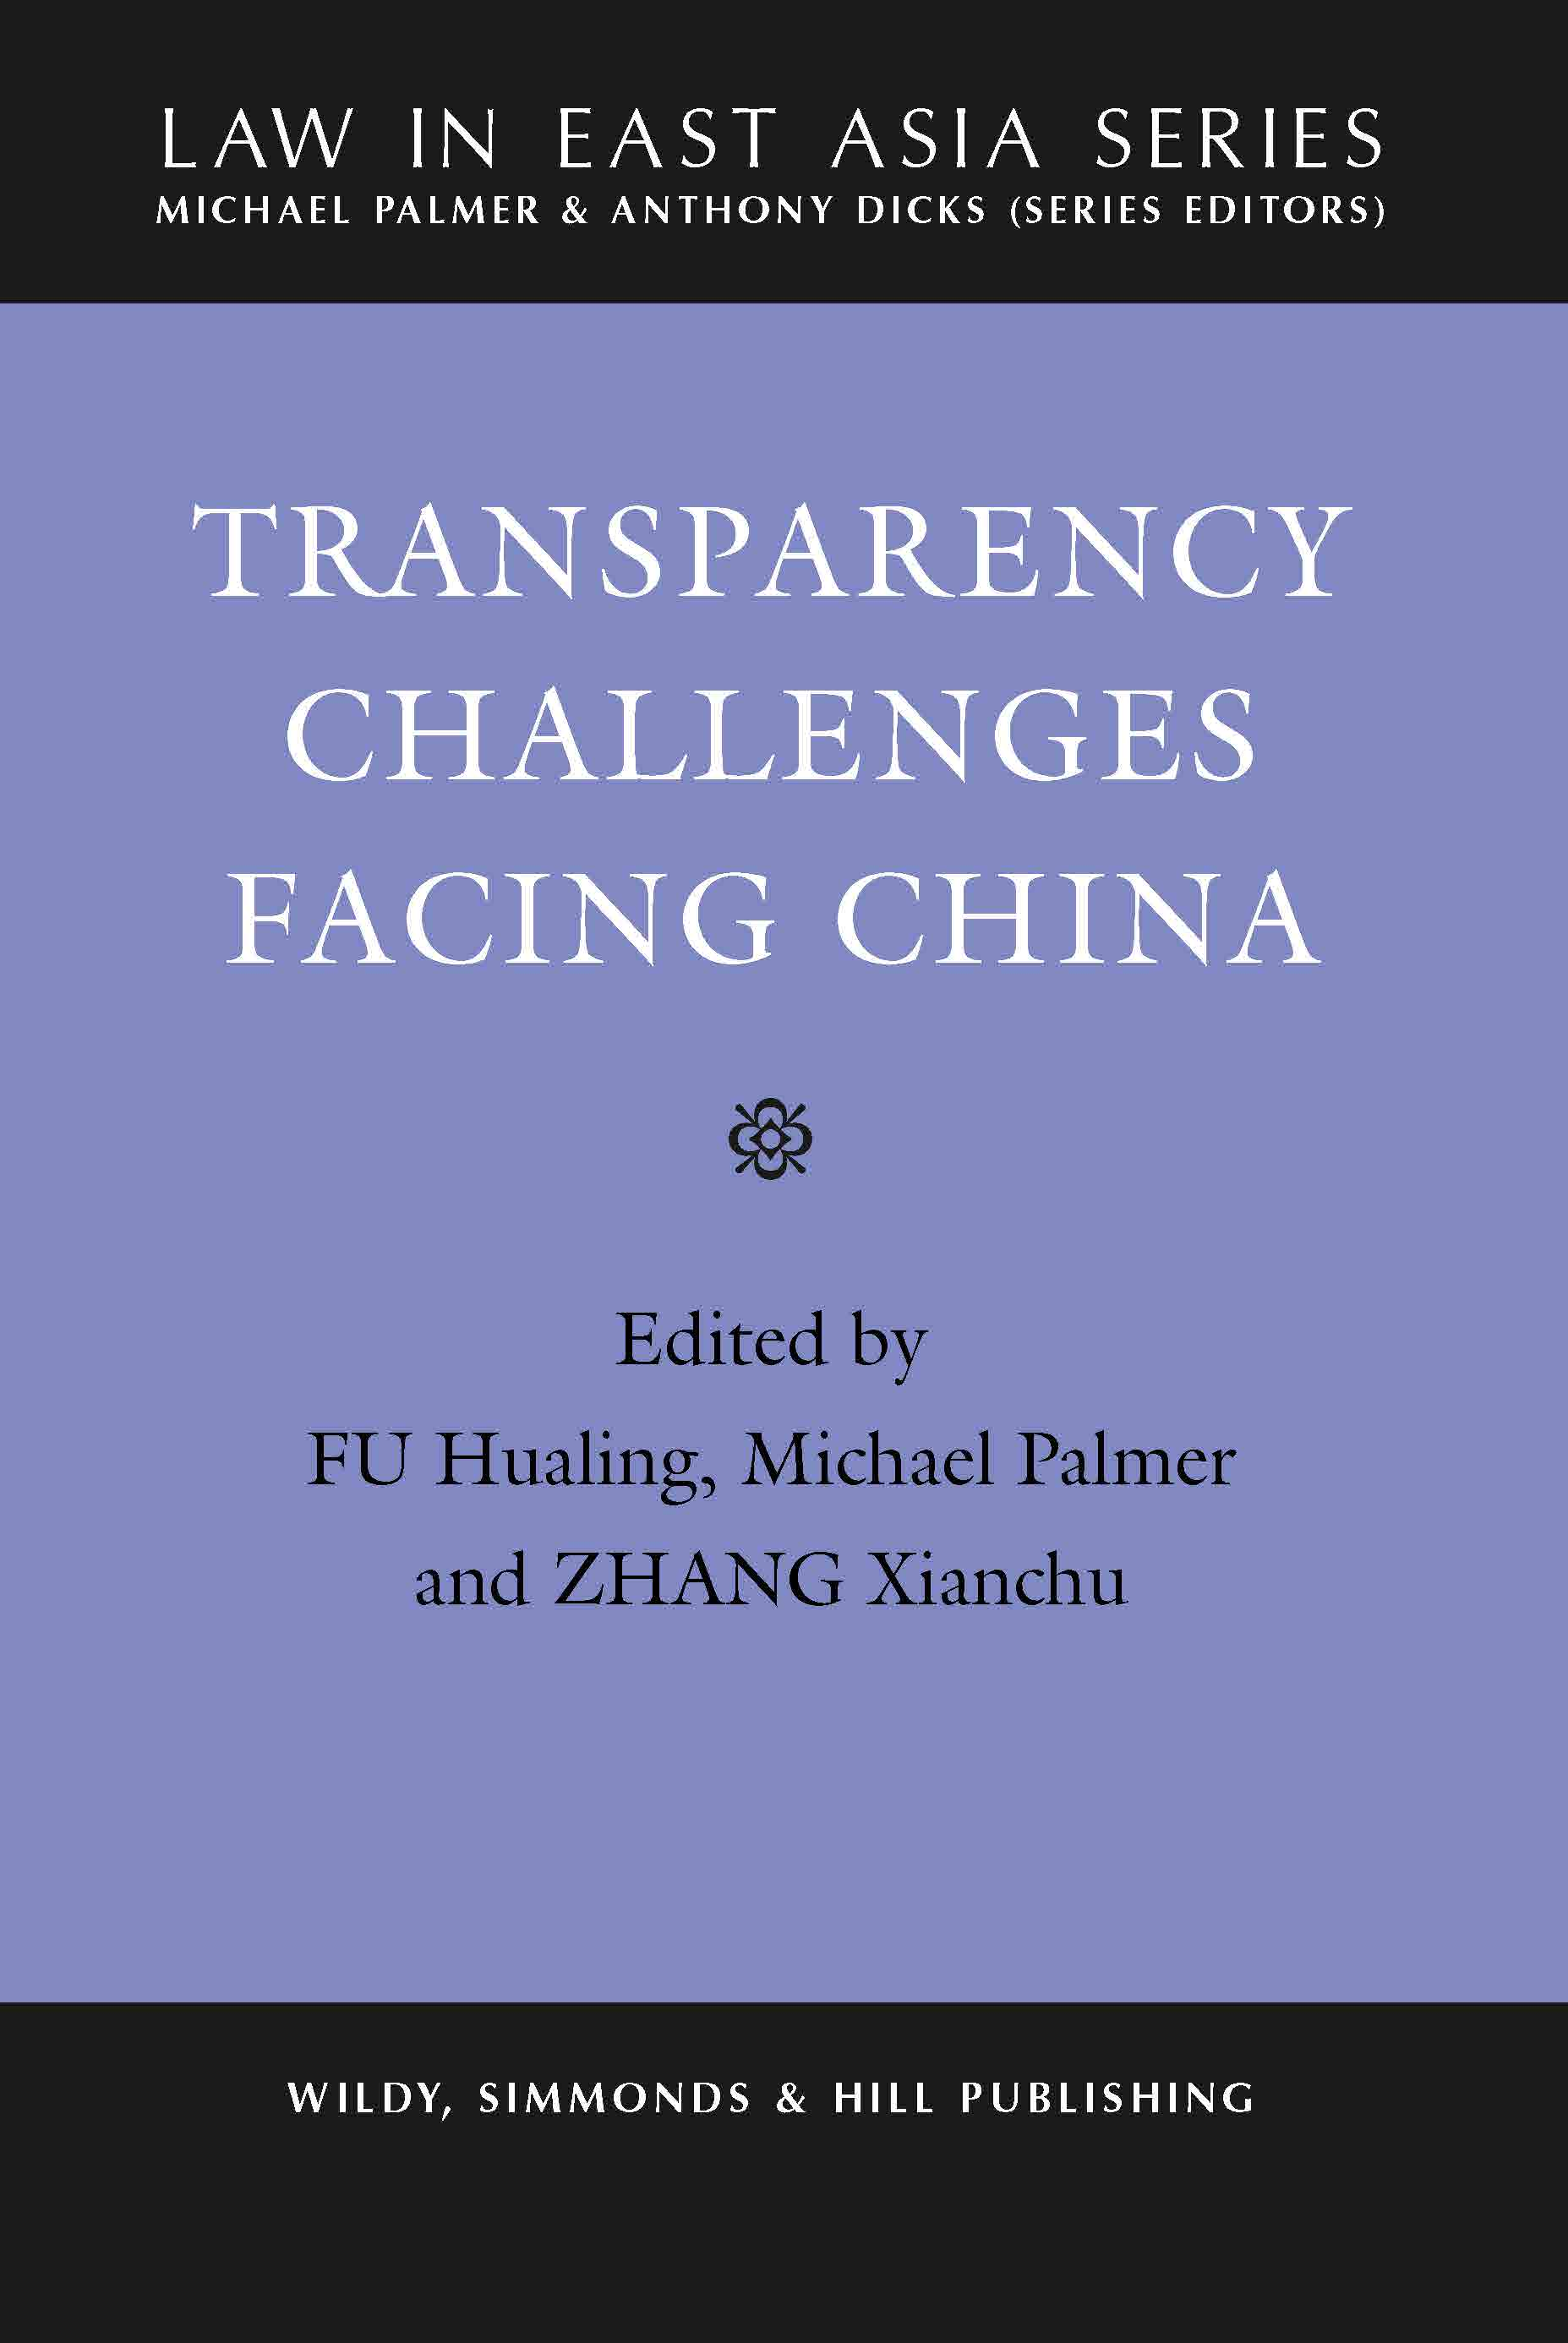 Transparency challenges facing China